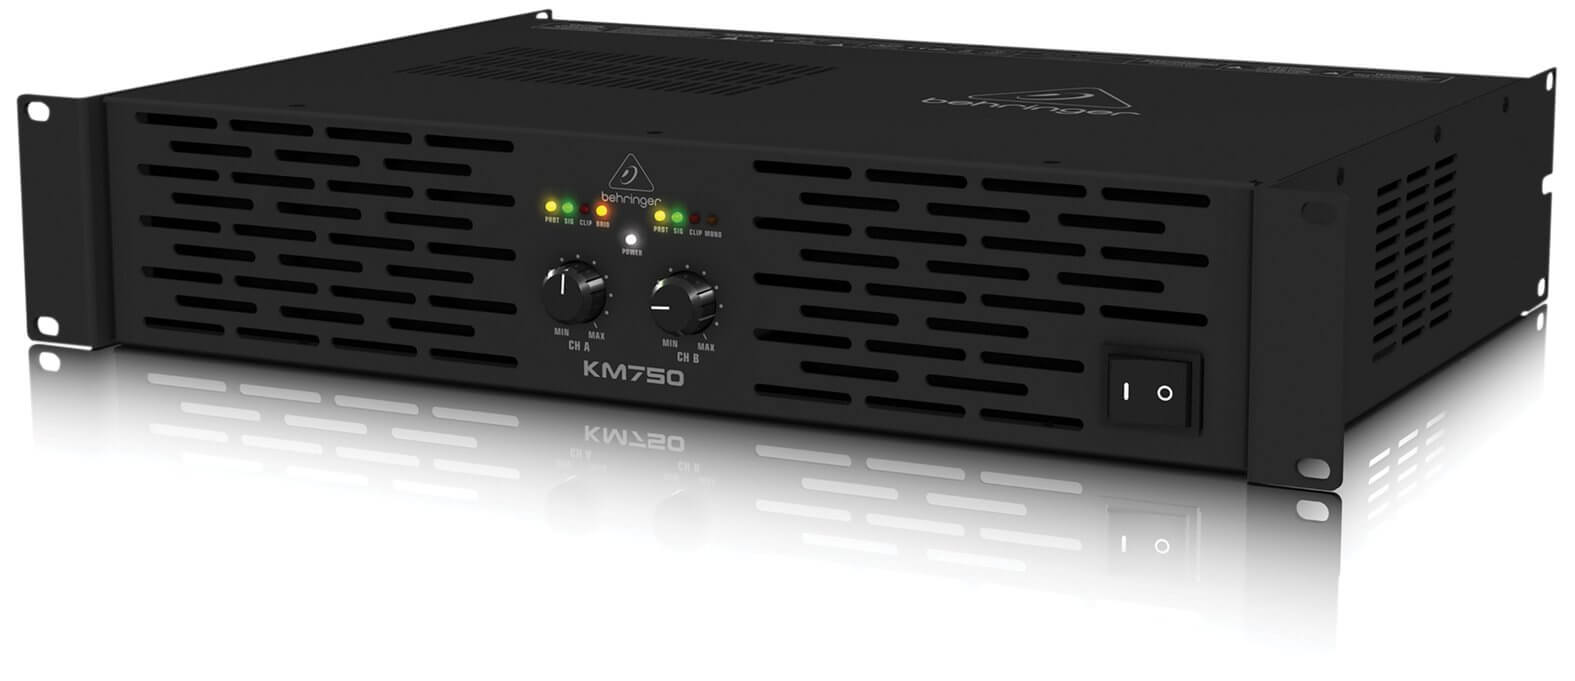 Behringer KM750 Professional 750-Watt Stereo Power Amplifier with ATR (Accelerated Transient Response)